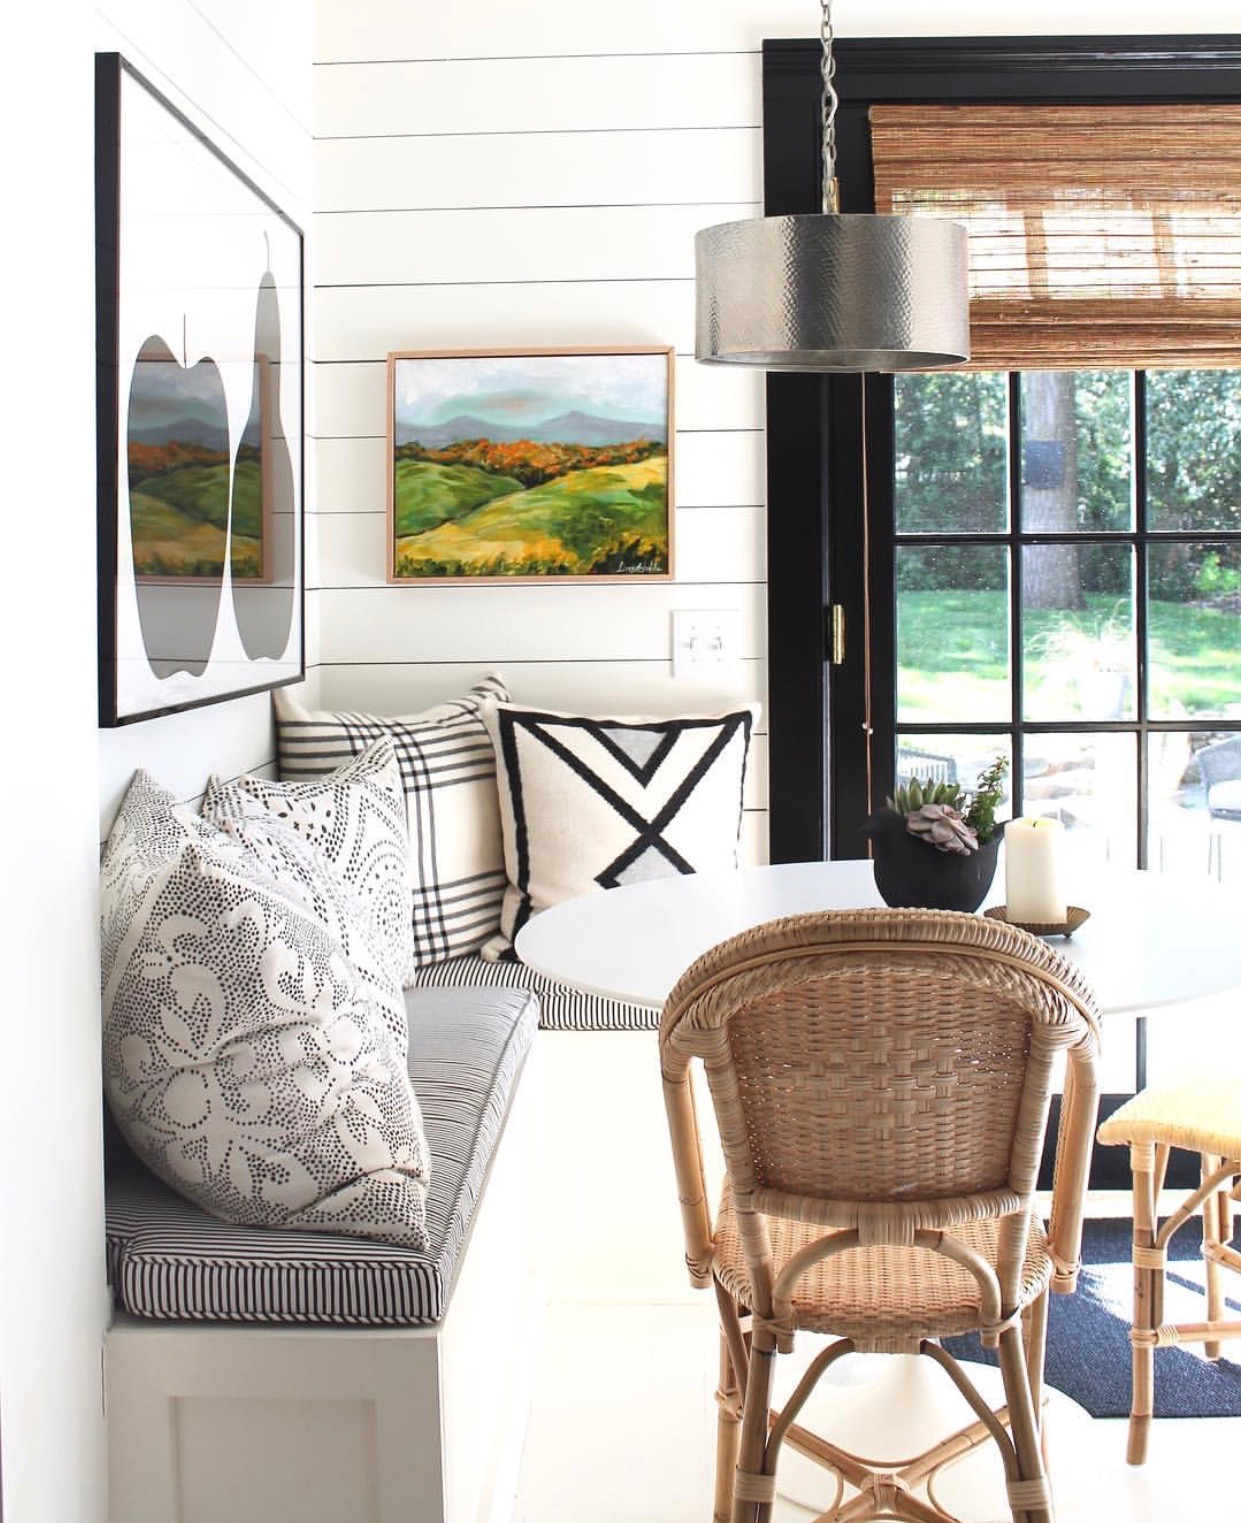 Home + Habitat // Using Instagram's Bookmark Feature and 15 Inspiring Accounts That You Should Be Following